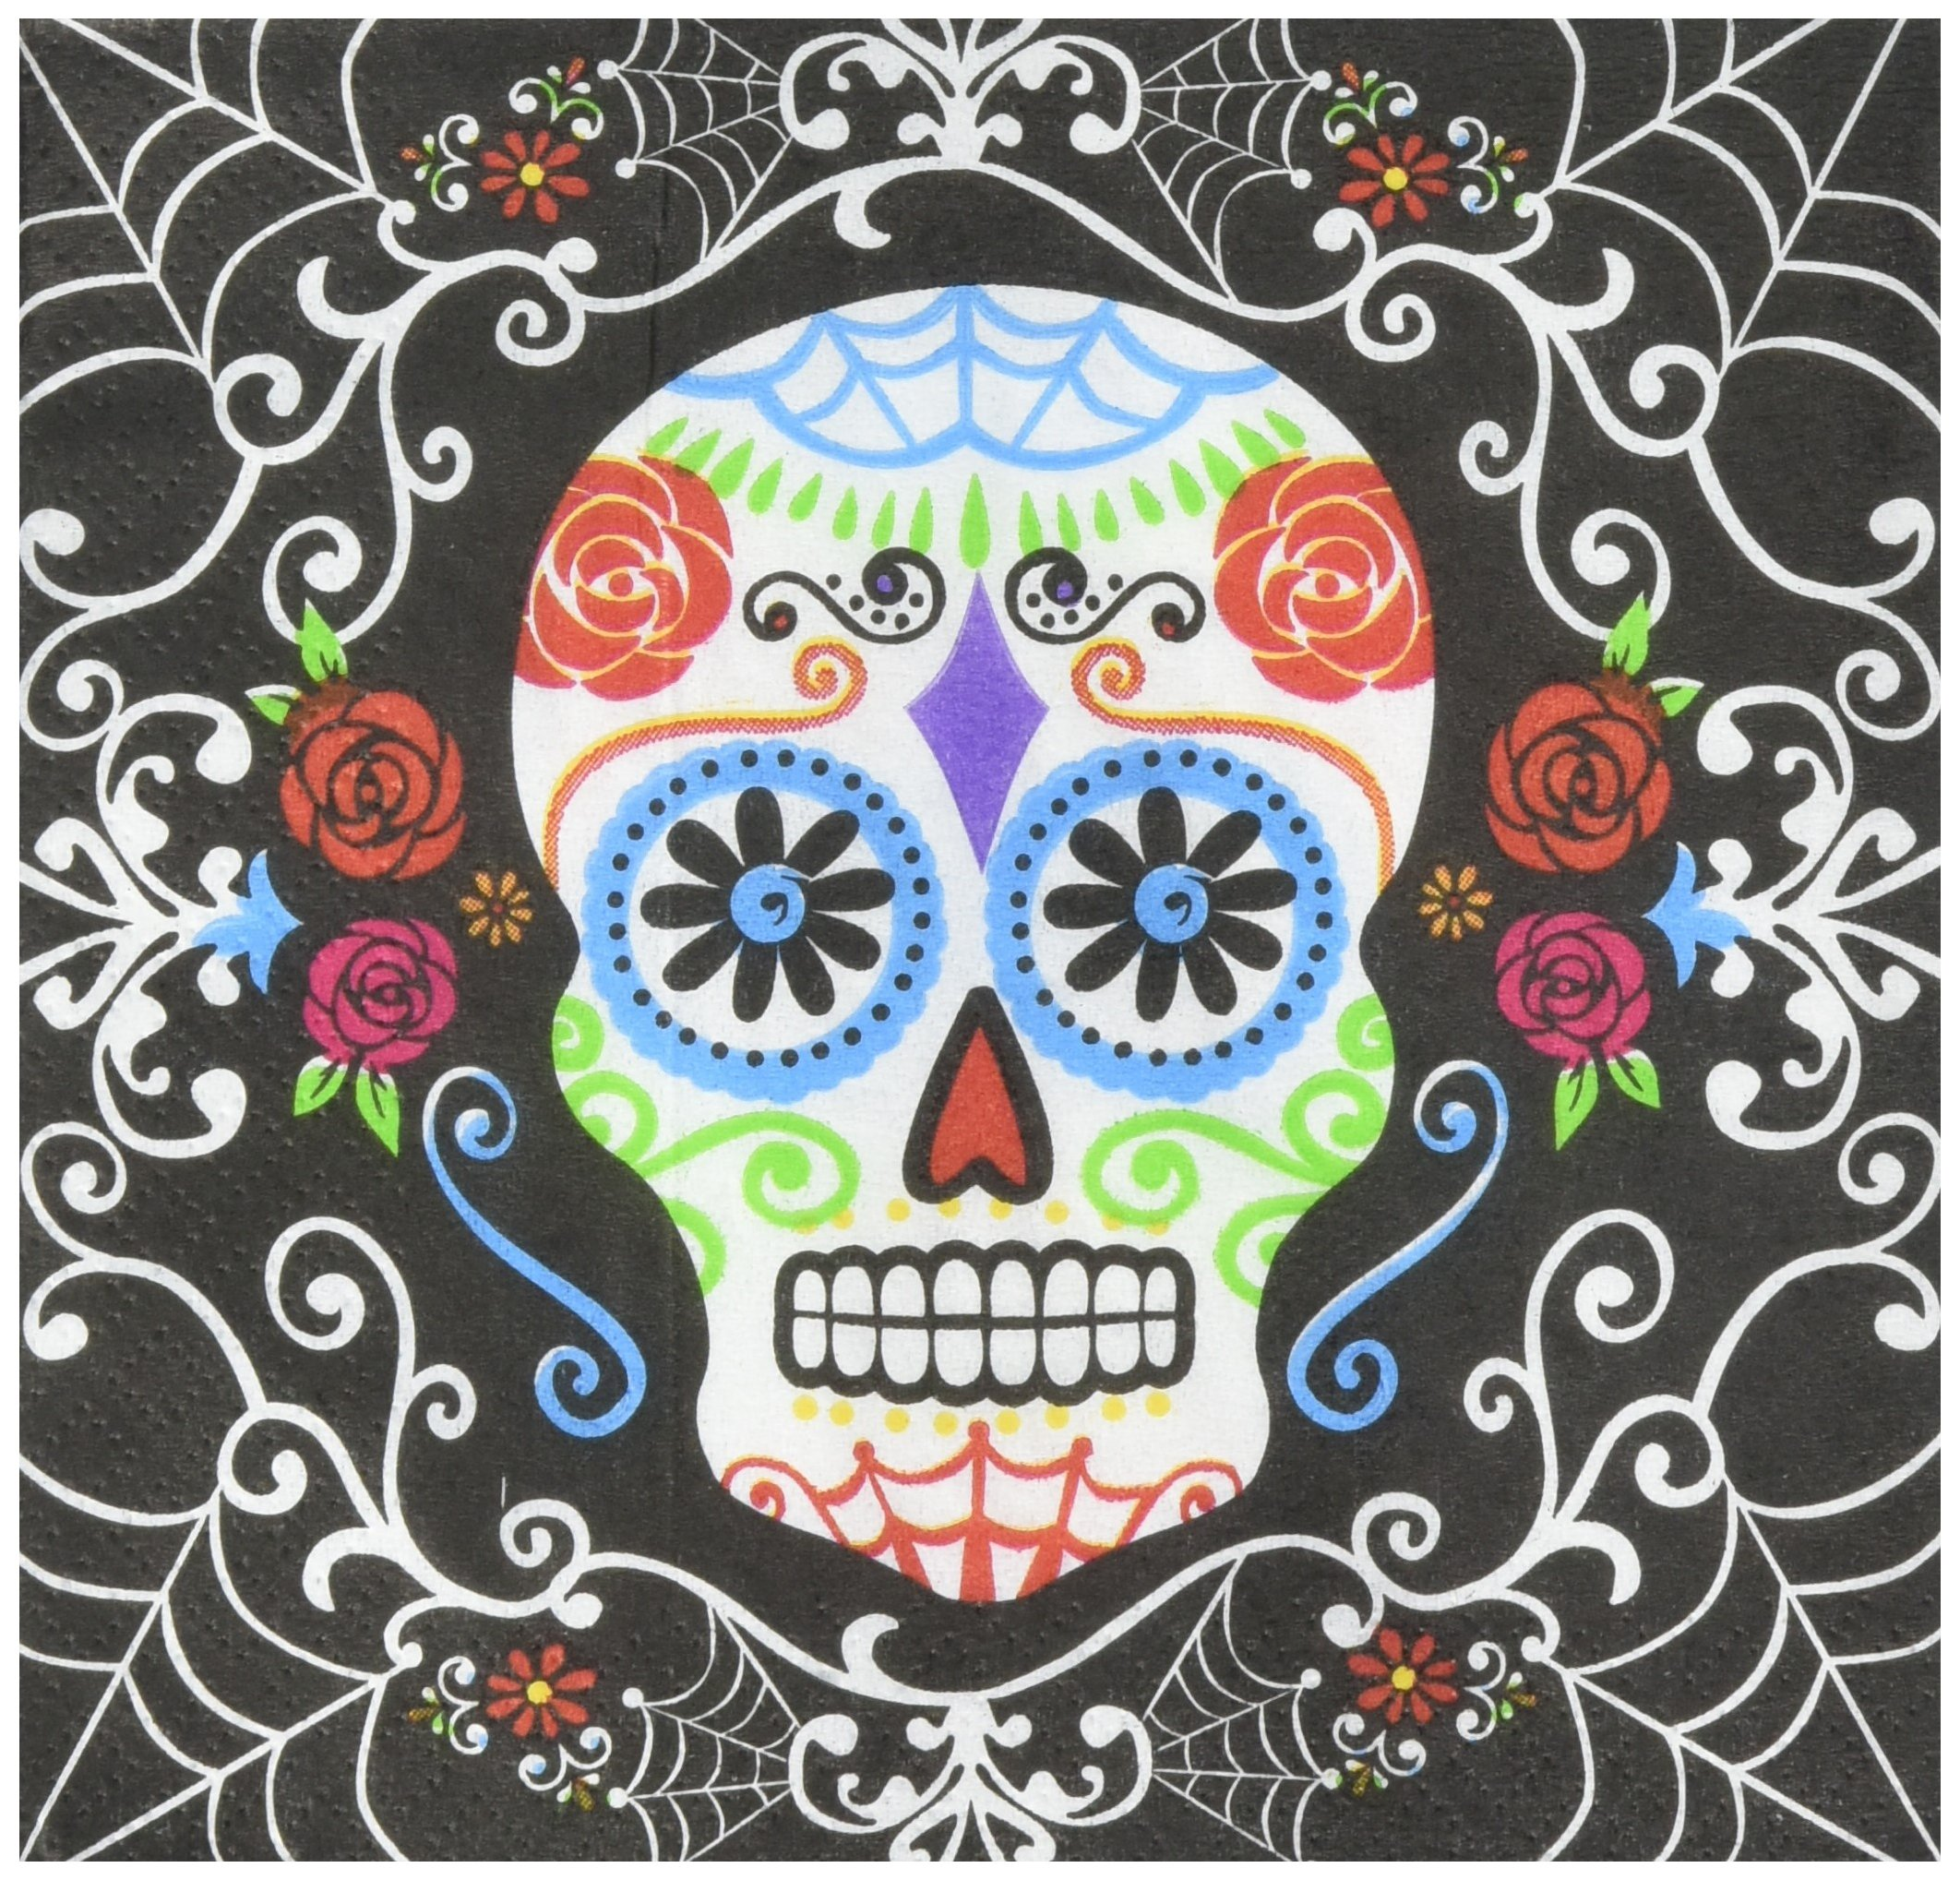 Day of The Dead Beverage Napkins, 432 Ct. by amscan (Image #1)